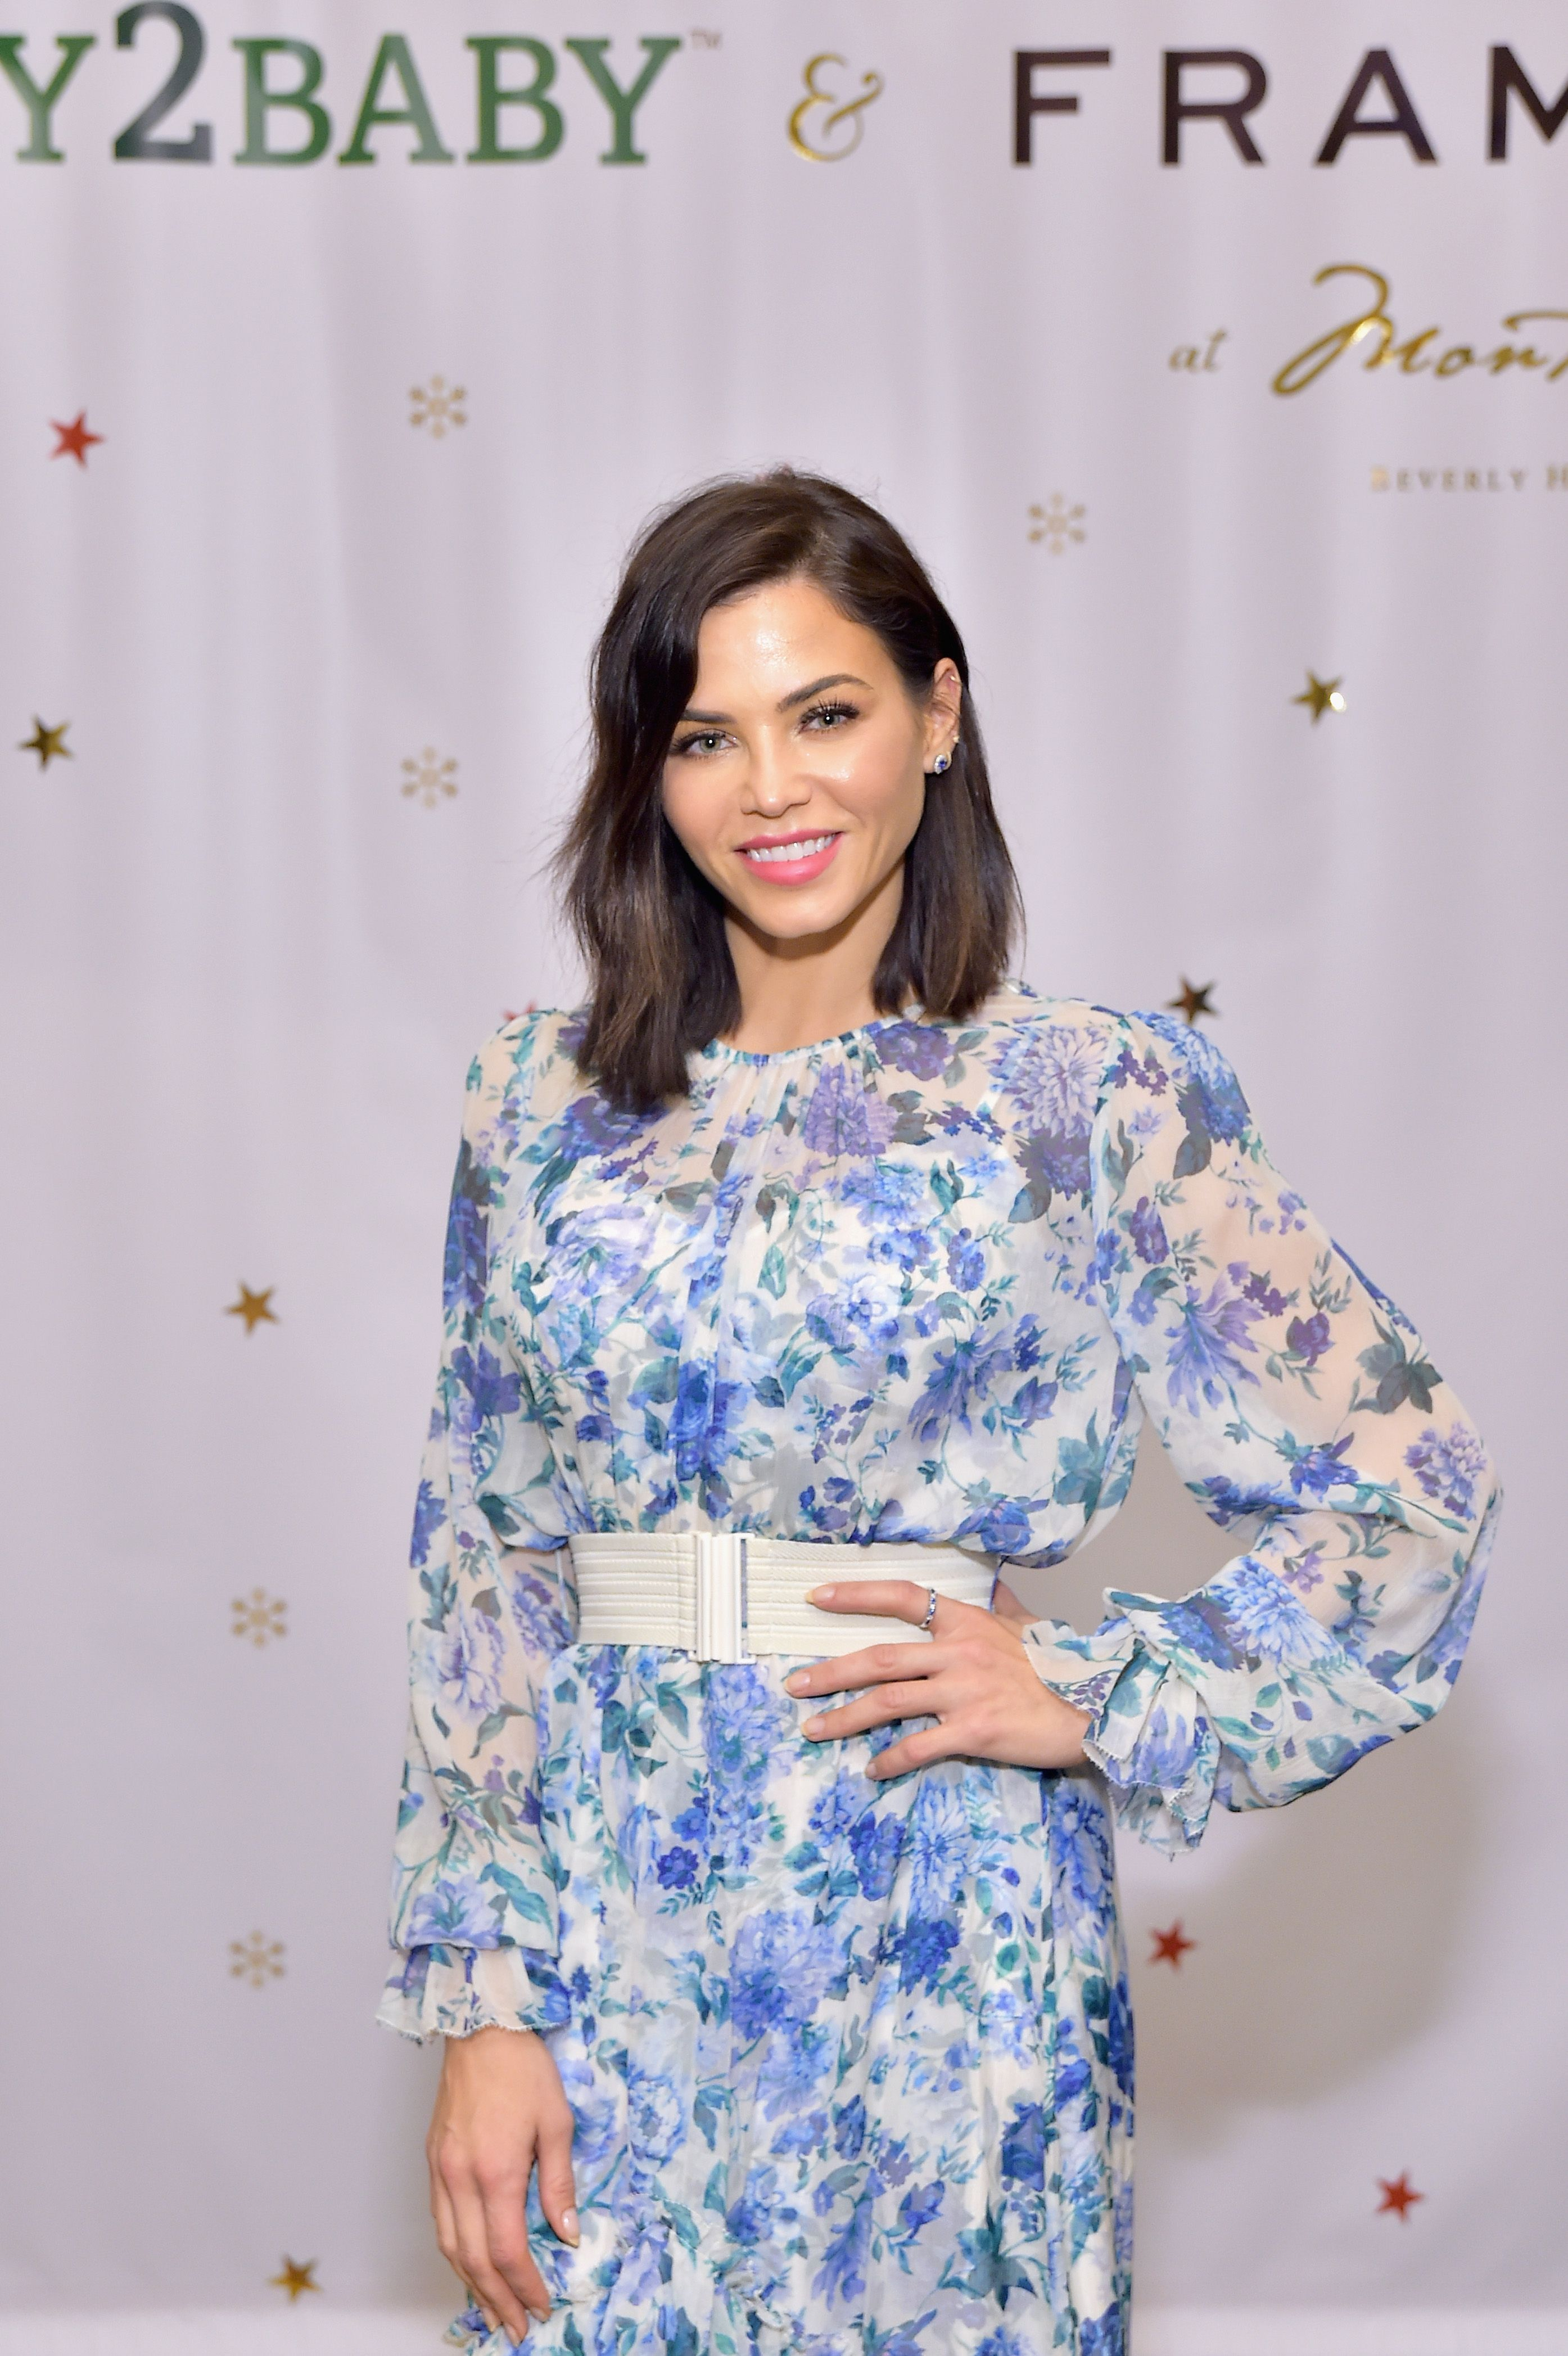 Jenna Dewan Says She's 'Hooked' On Wrestling Now, Thanks To Boyfriend Steve Kazee